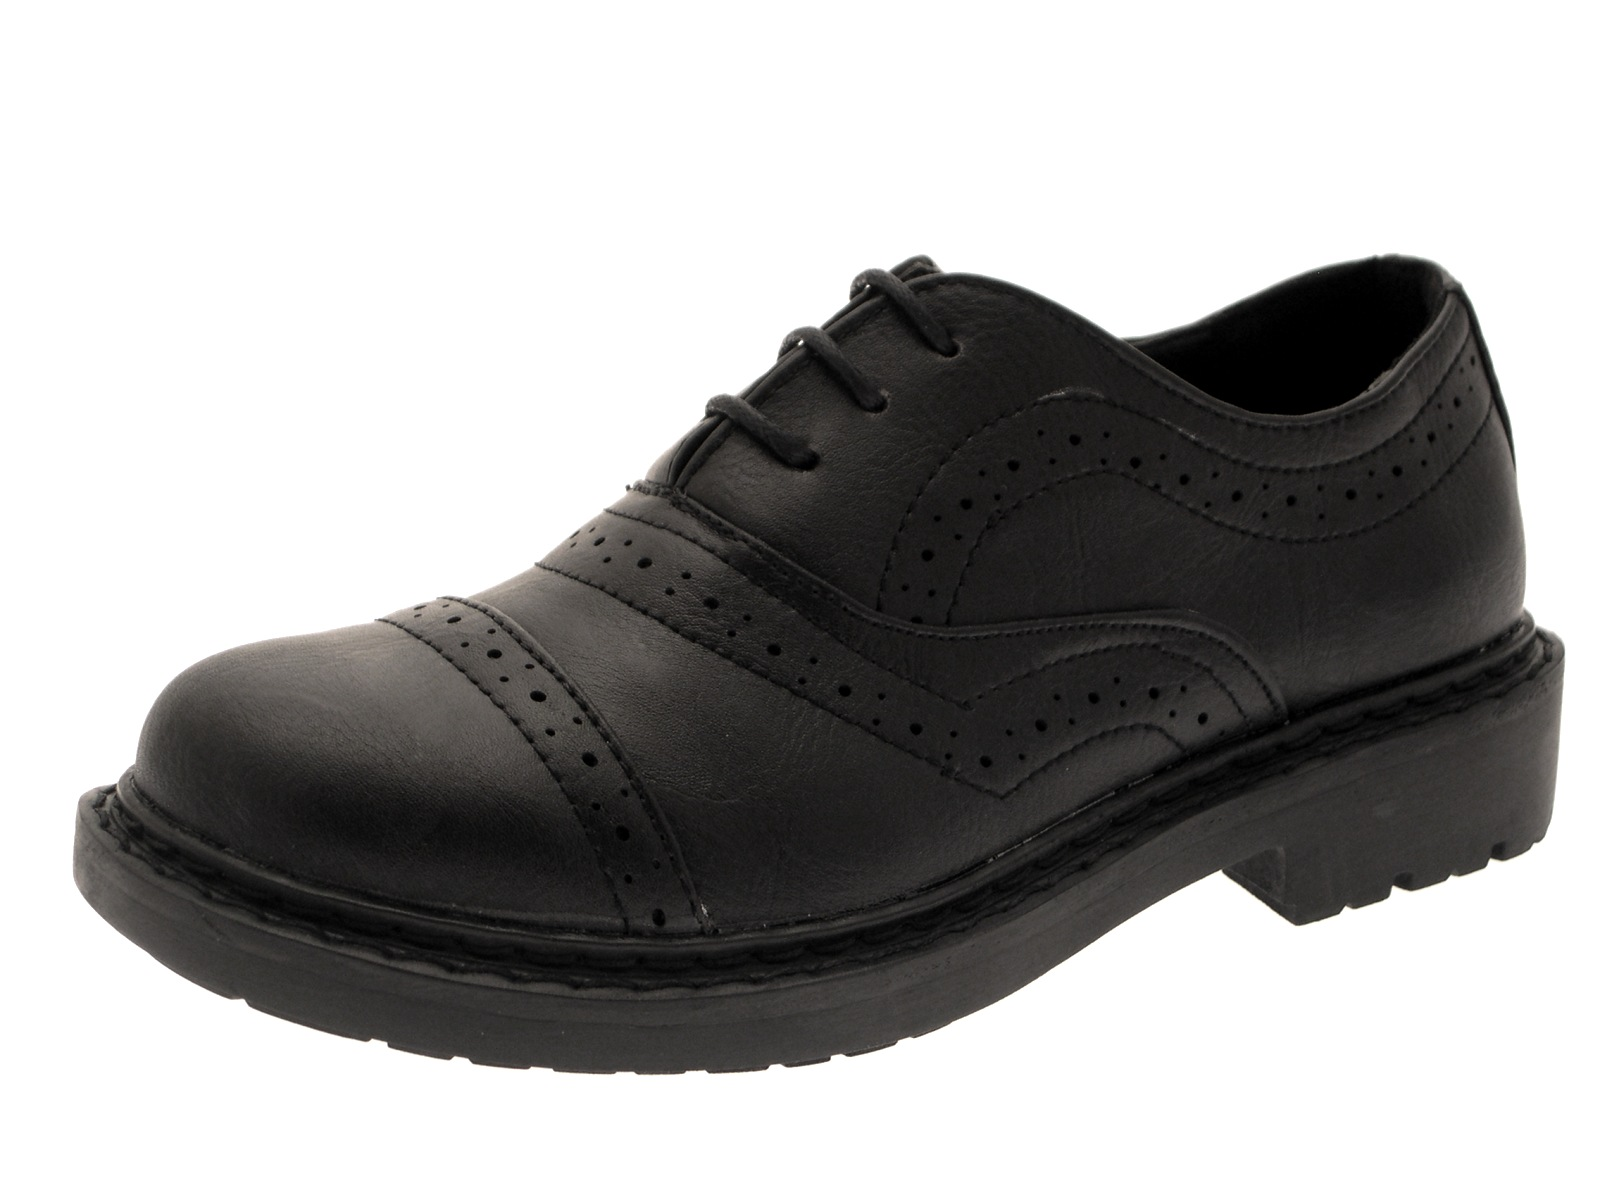 Kids Boys Black Lace Up Brogue Faux Leather School Shoes Formal Size UK 10 - 2